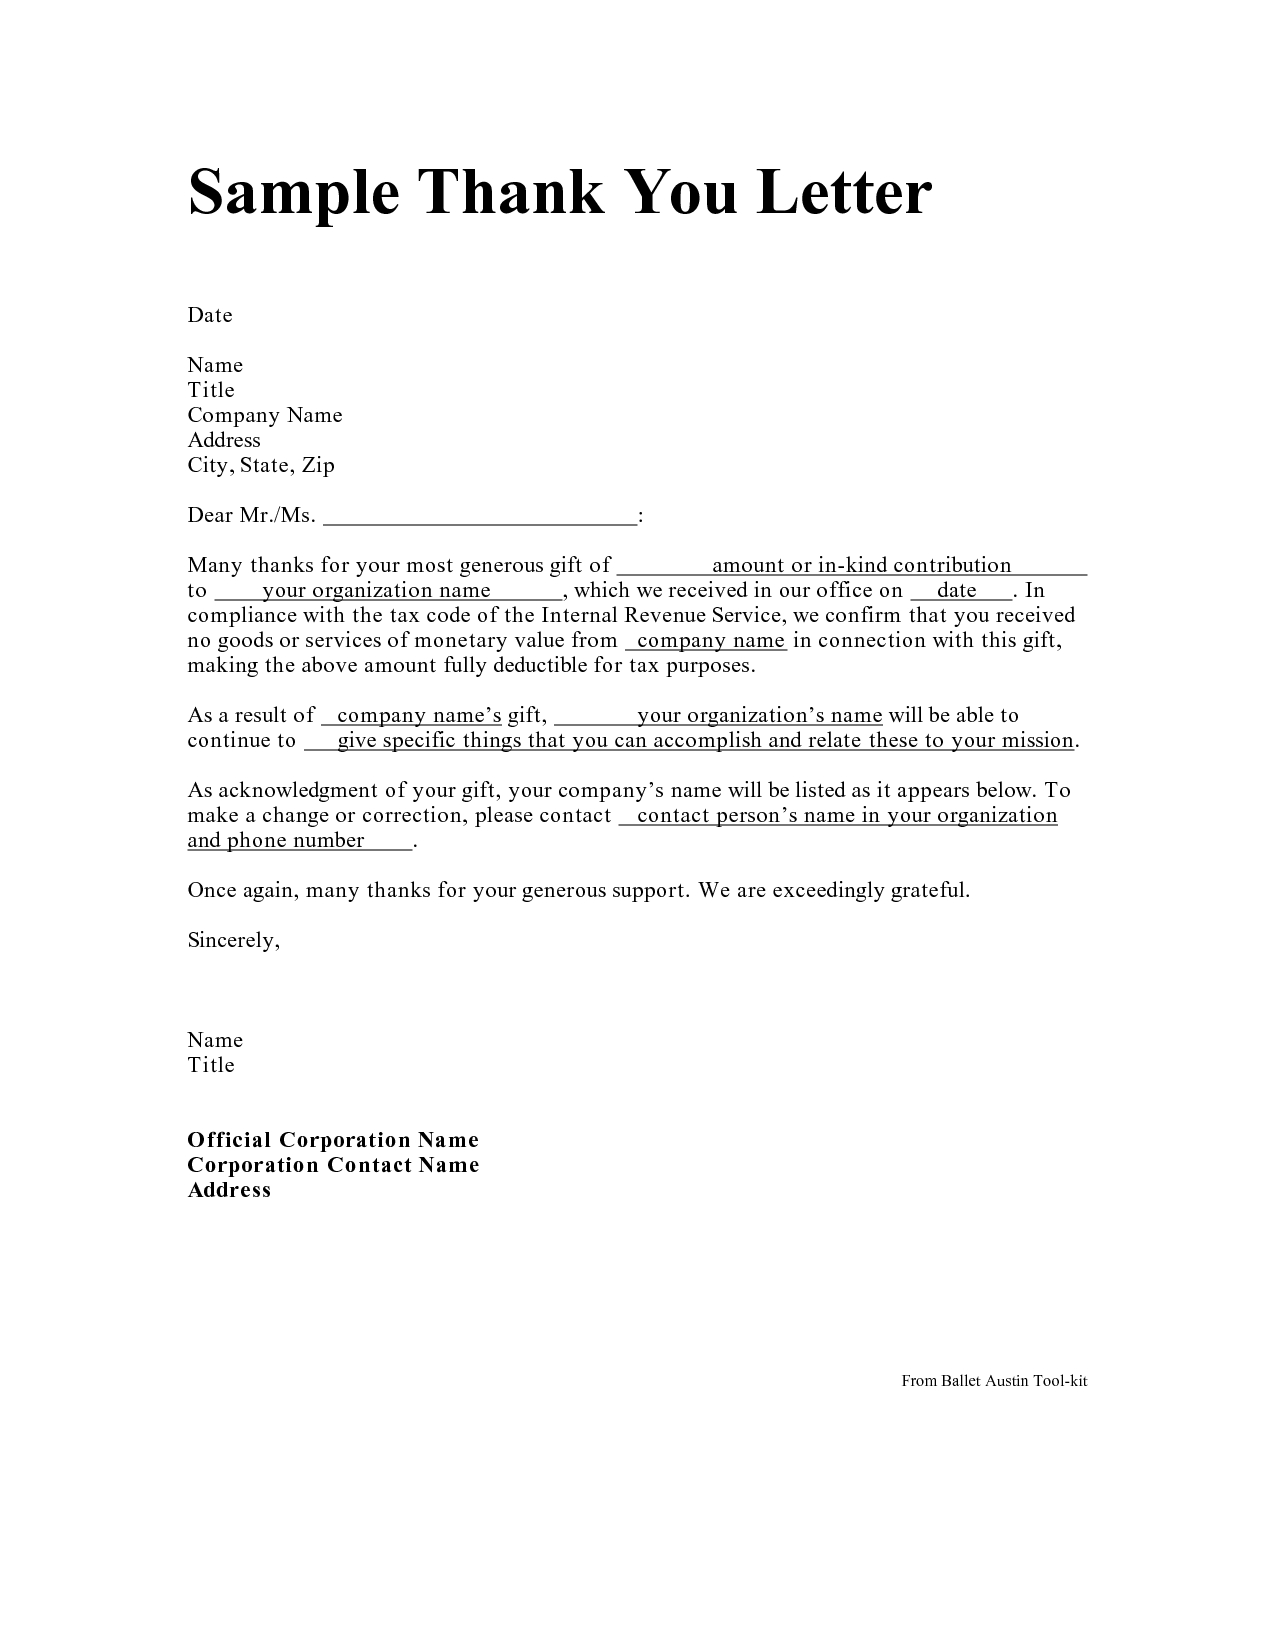 car donation letter template example-Personal Thank You Letter Personal Thank You Letter Samples Writing Thank You Notes Thank You Note Examples 18-d